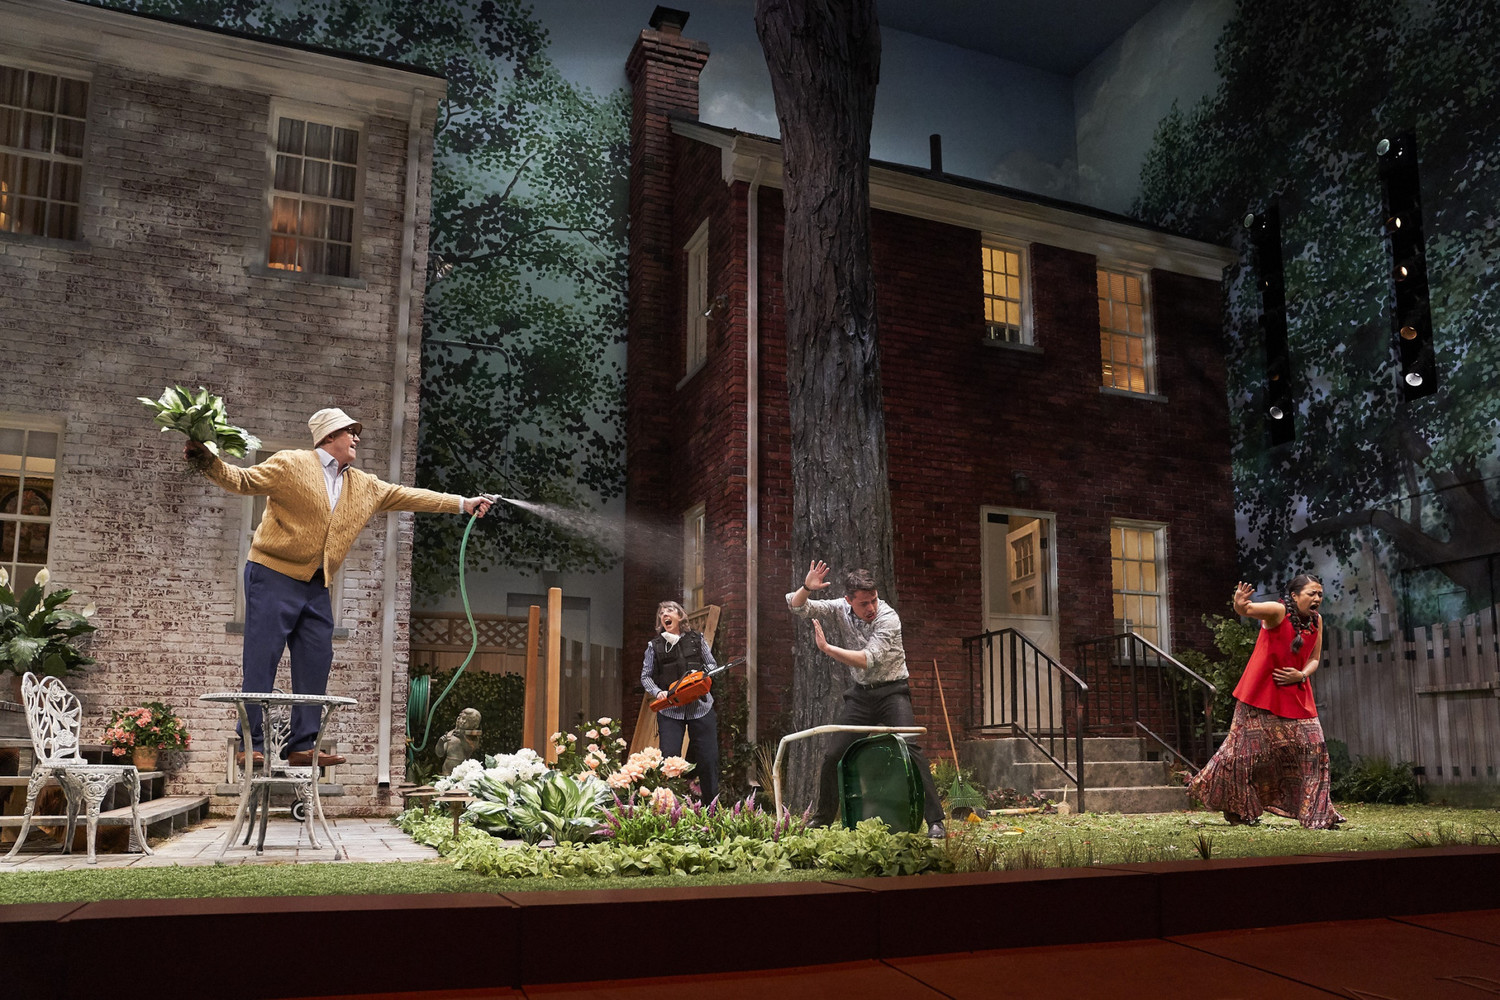 BWW Review: Should We Laugh or Cry? State of Civility Examined in NATIVE GARDENS at CPH